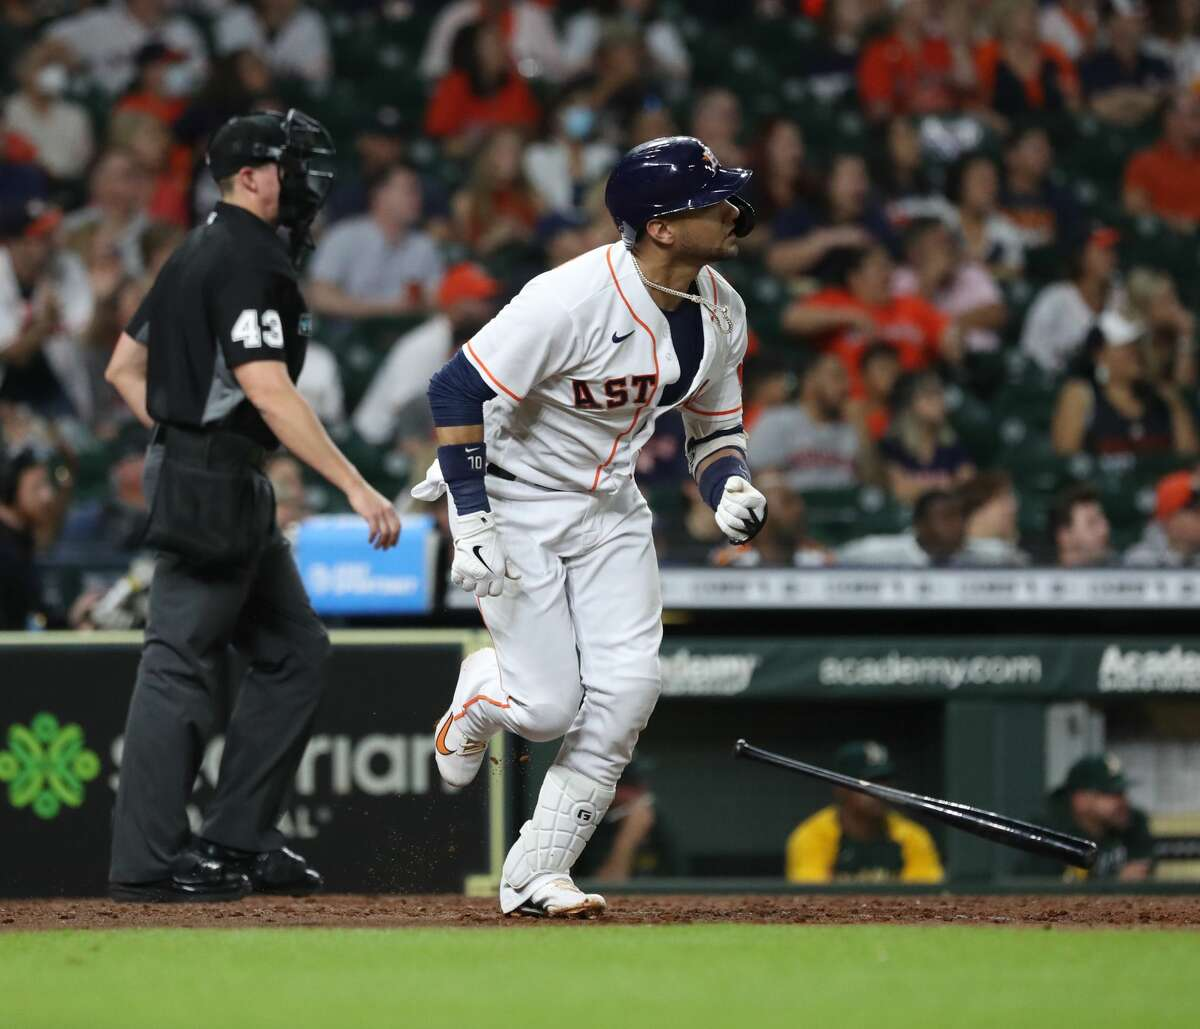 Houston Astros Yuli Gurriel (10) hits a home run, which was originally called a double, then overturned in a challenge during the third inning of an MLB baseball game at Minute Maid Park, Saturday, October 2, 2021, in Houston.